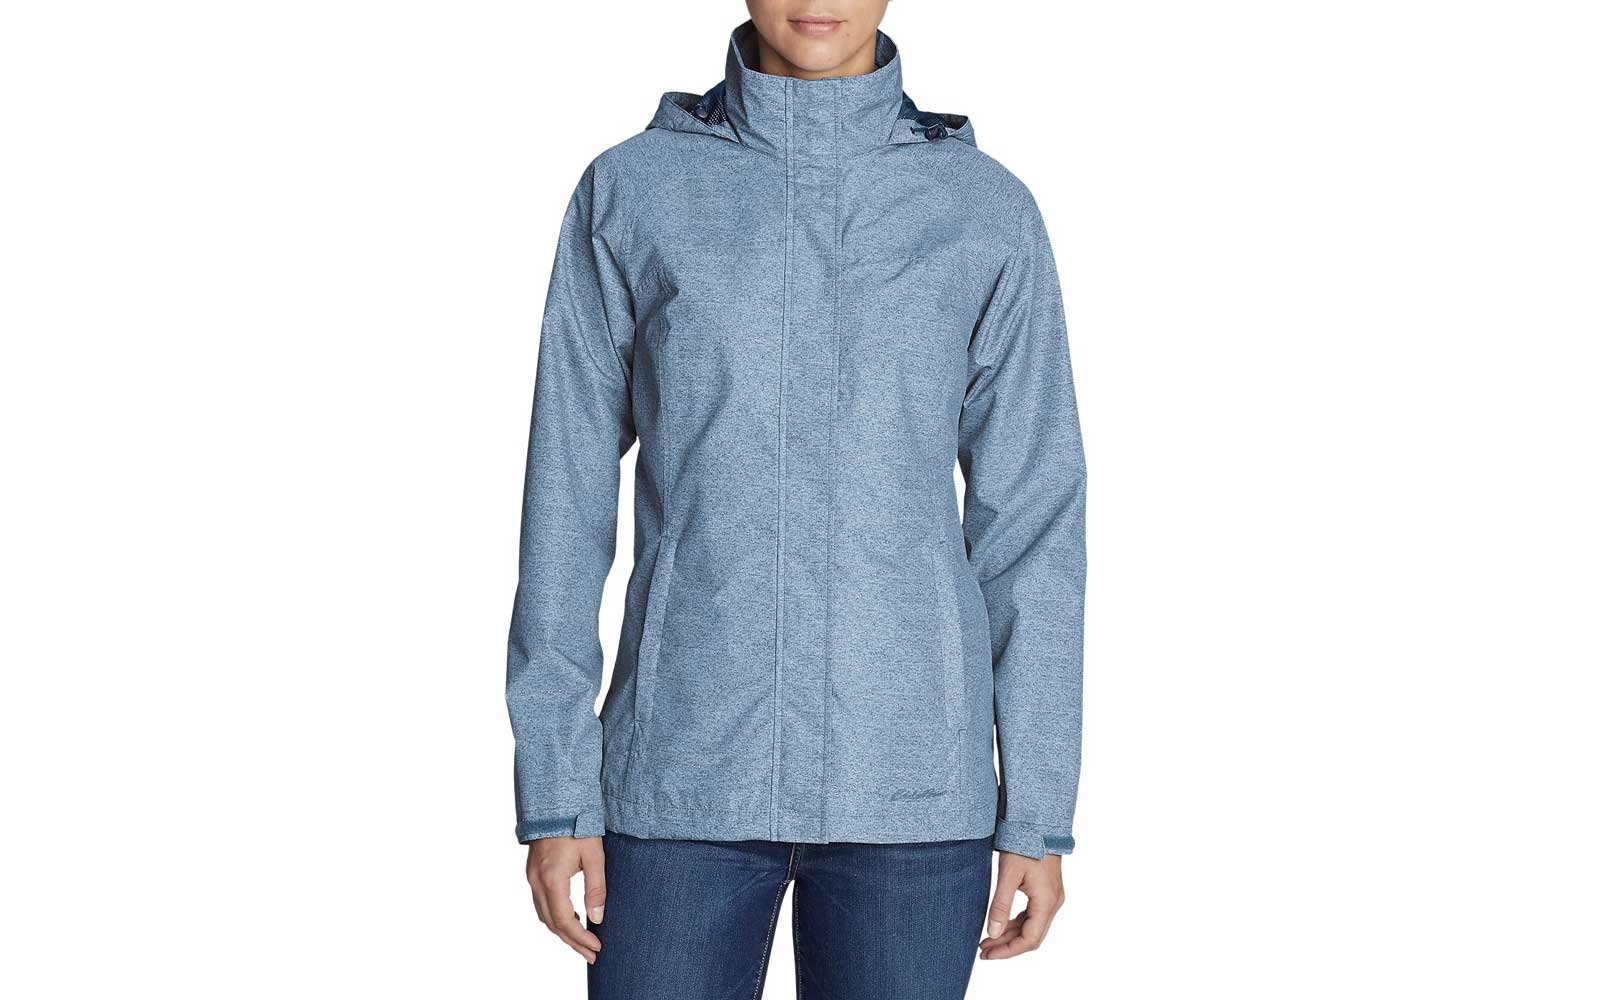 a6a6d0959d4e Packable Rain Jackets for Men and Women